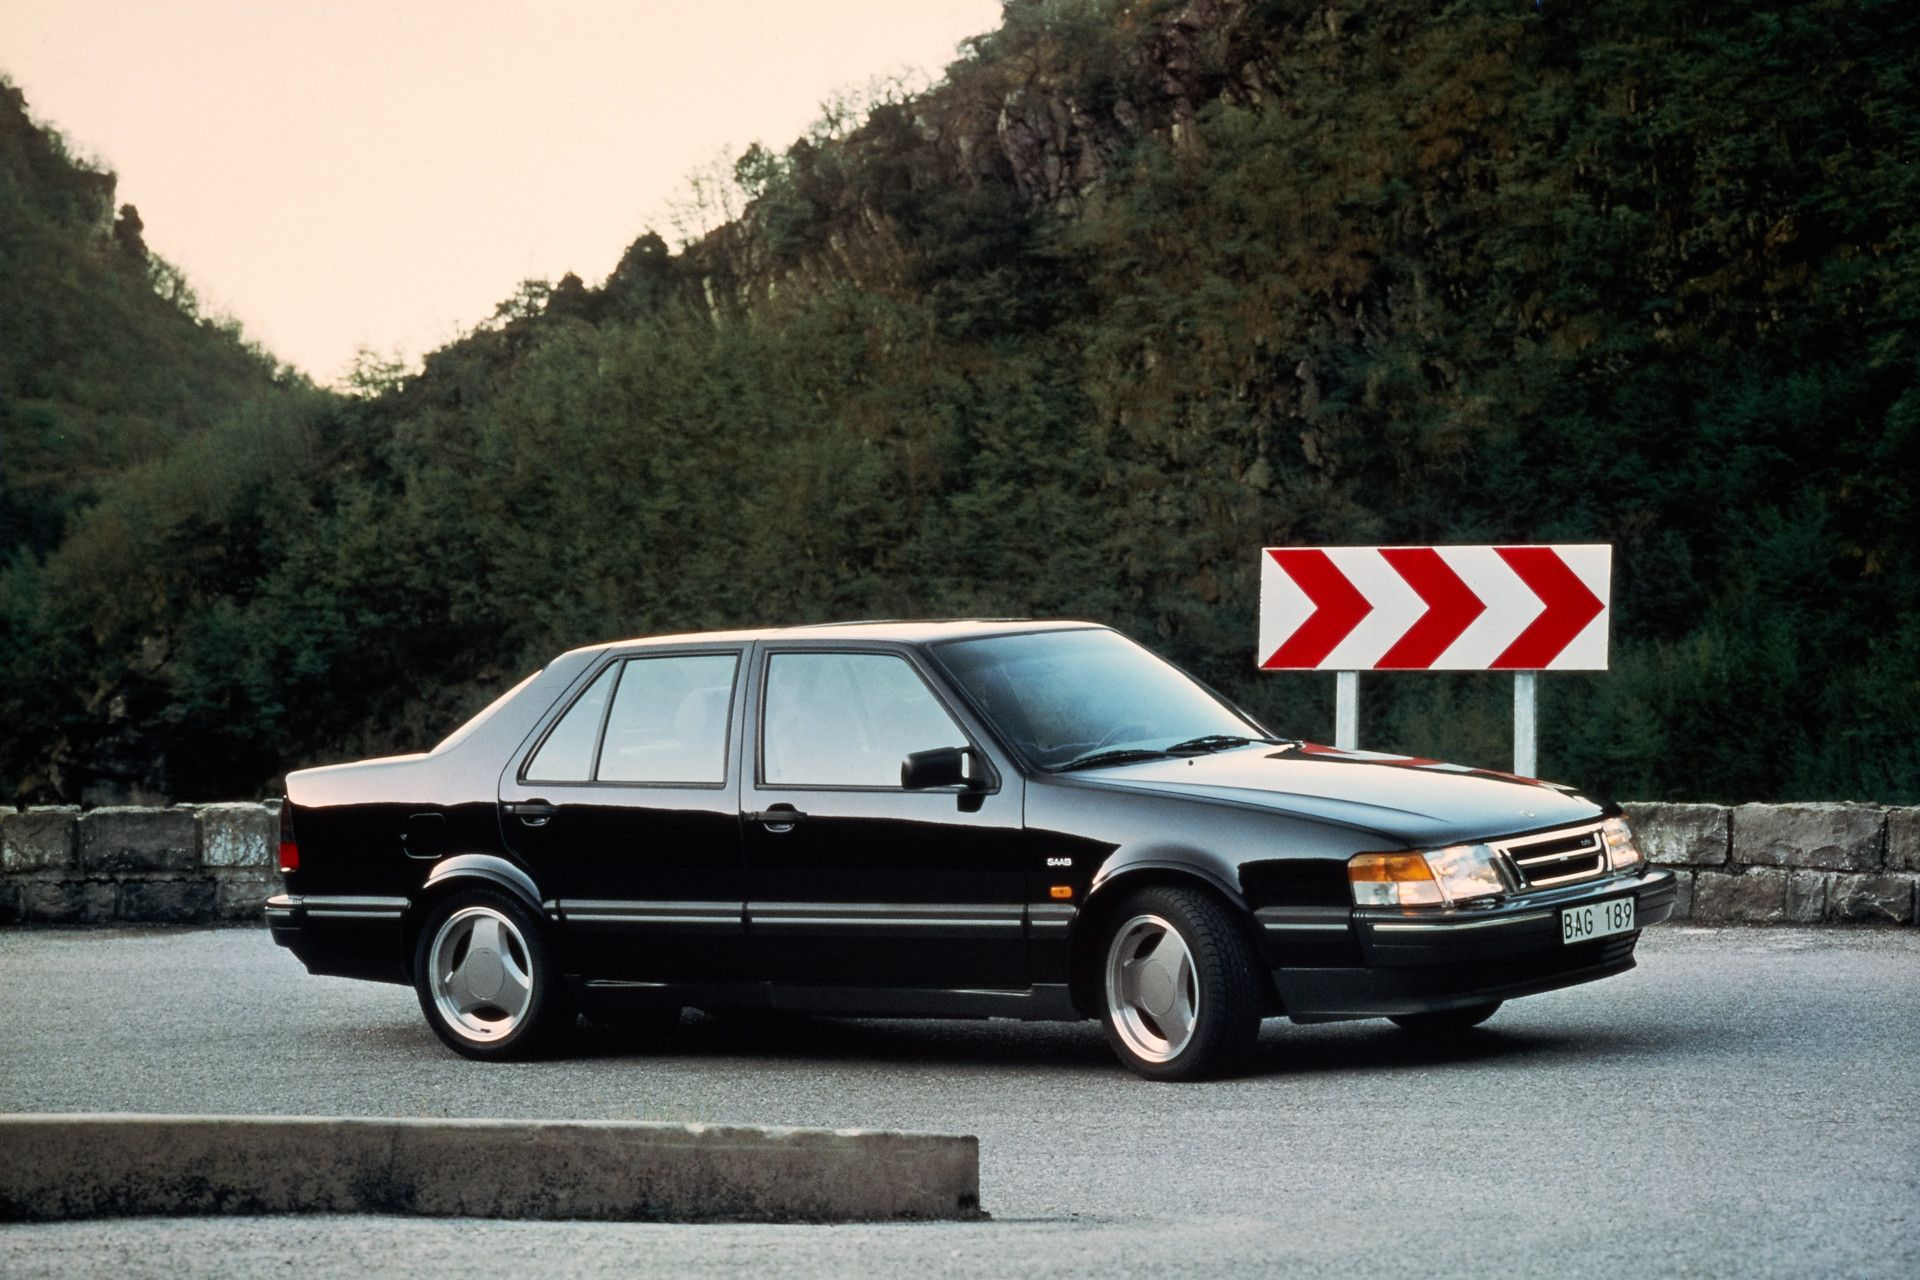 Saab 9000 cd a very underrated car